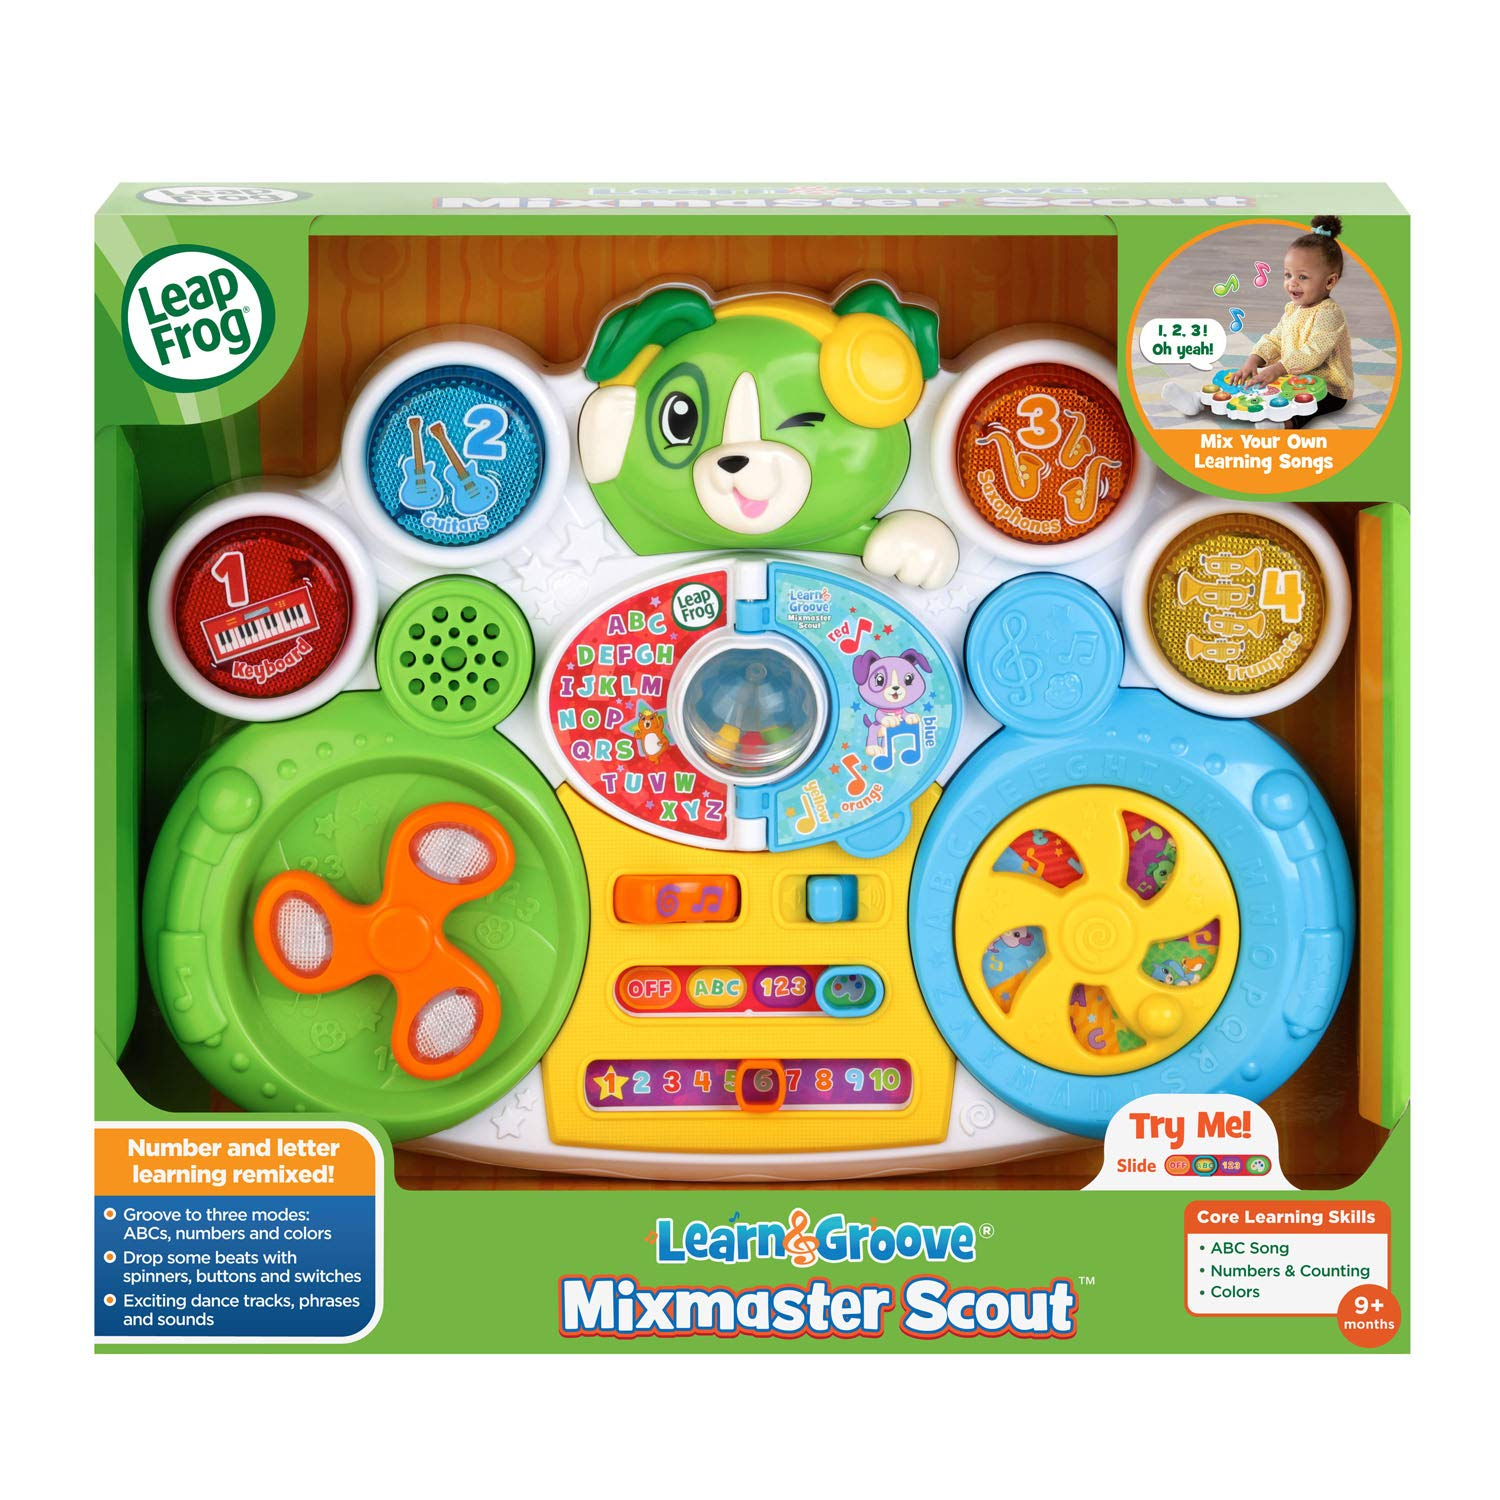 Learn & Groove Mixmaster Scout